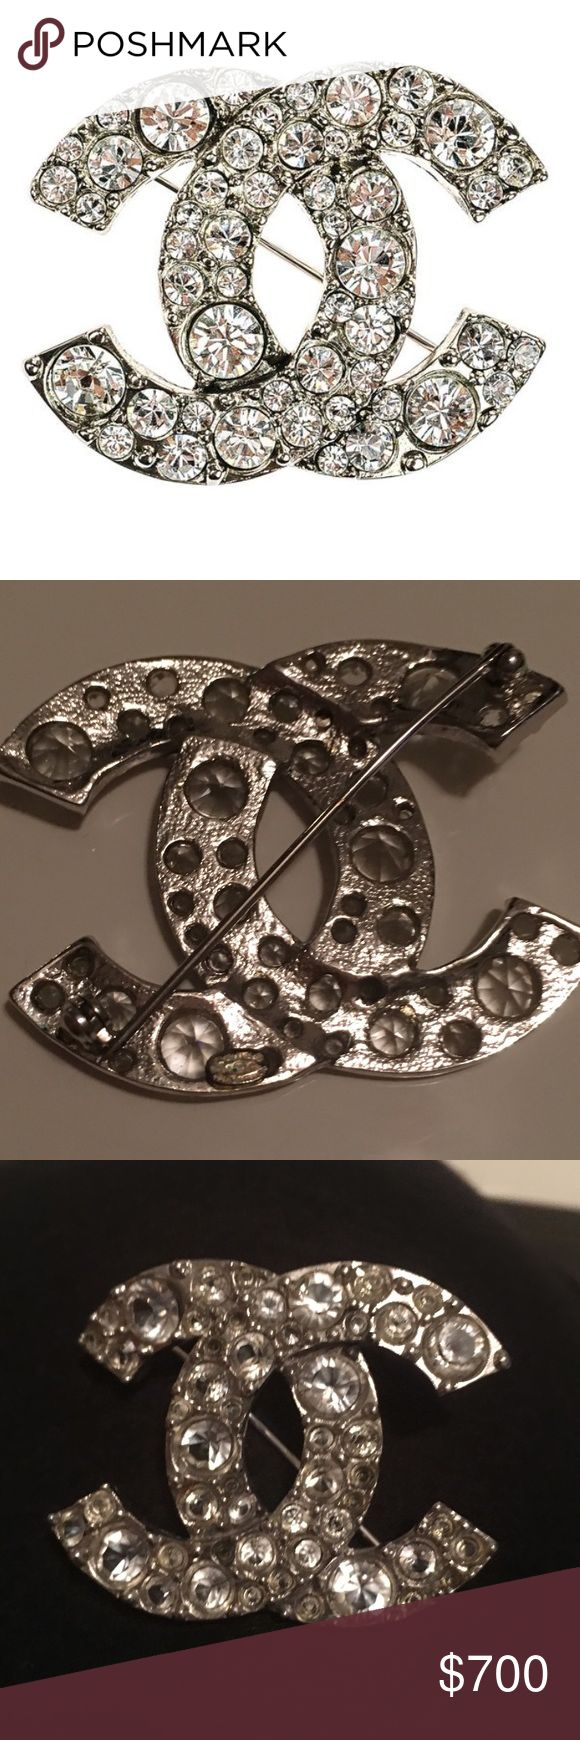 """Chanel Silver CC Logo Swarovski Crystals Brooch This Chanel Silver CC Logo Swarovski Crystals Brooch features polished silver finish accented with sparkling Swarovski crystals. Be a center of attention wearing this classic and timeless piece from Chanel!   In pristine condition. Material: Silver-Tone Metal  Origin: France  Measurements: 1.75""""L x 1.25""""H  Hardware: Silver-Tone  Closure/Opening: Roll Needle  Gemstones: Swarovski Crystals CHANEL Jewelry Brooches"""